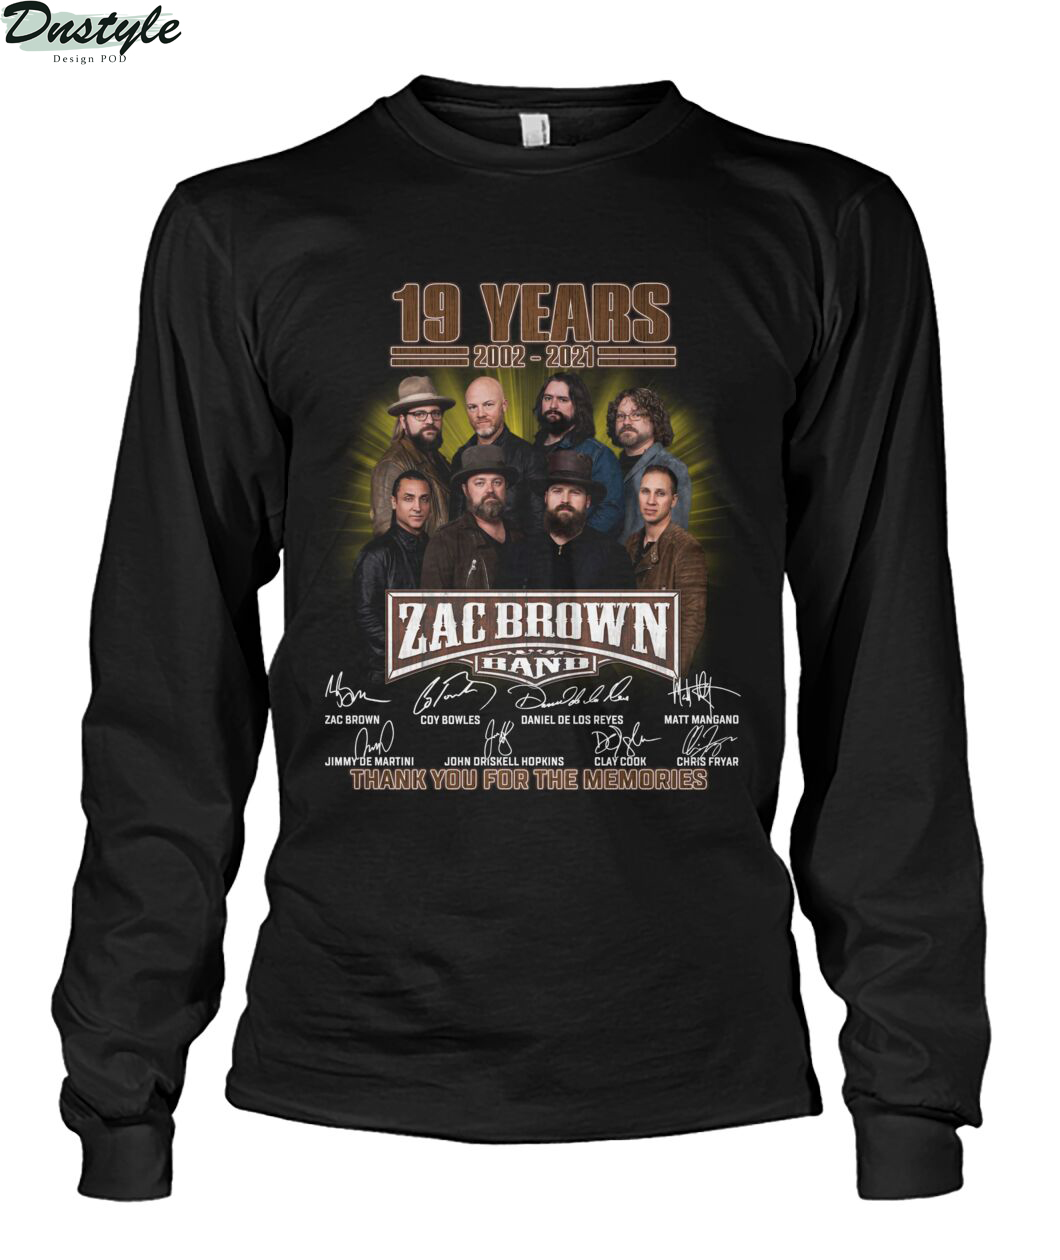 Zac Brown band 19 years 2002 2021 signature thank you for the memories long sleeve